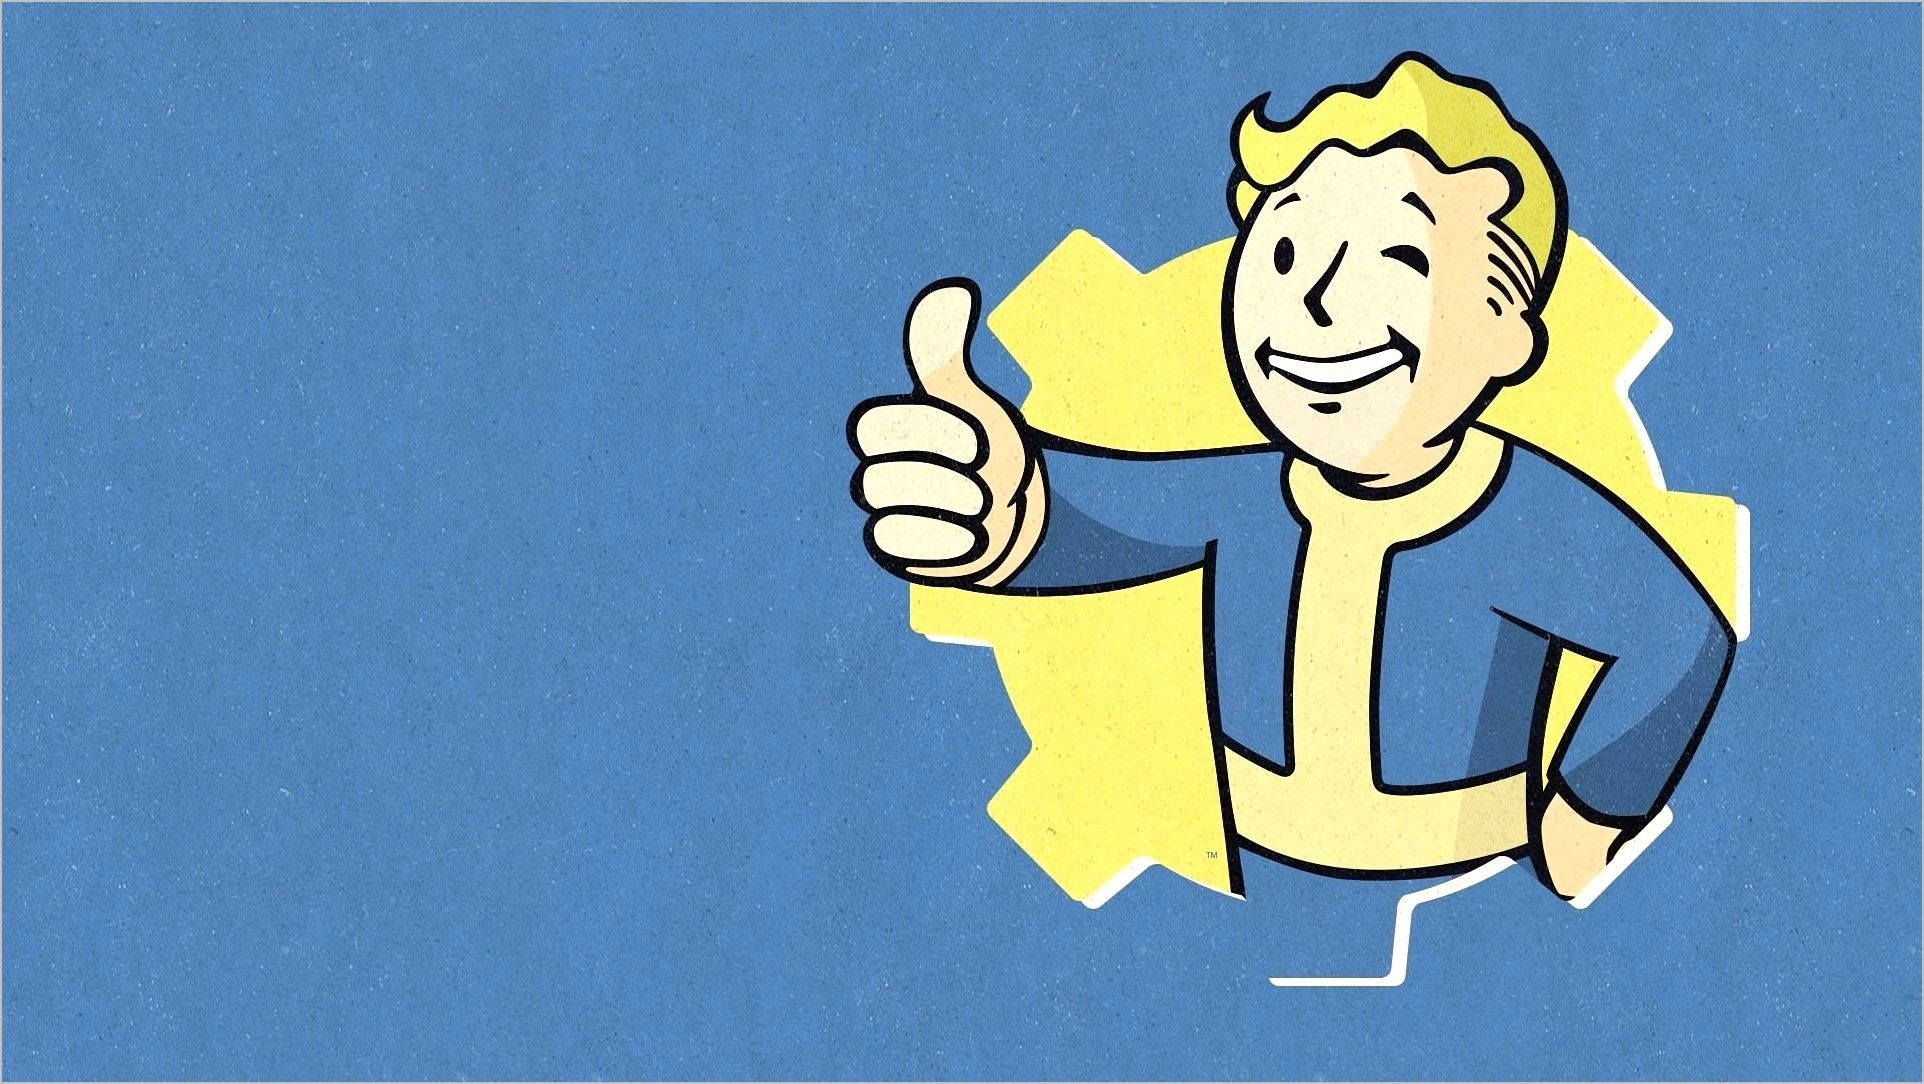 Vault Boy 4k Wallpaper In 2020 Boys Wallpaper Pip Boy Vault Boy